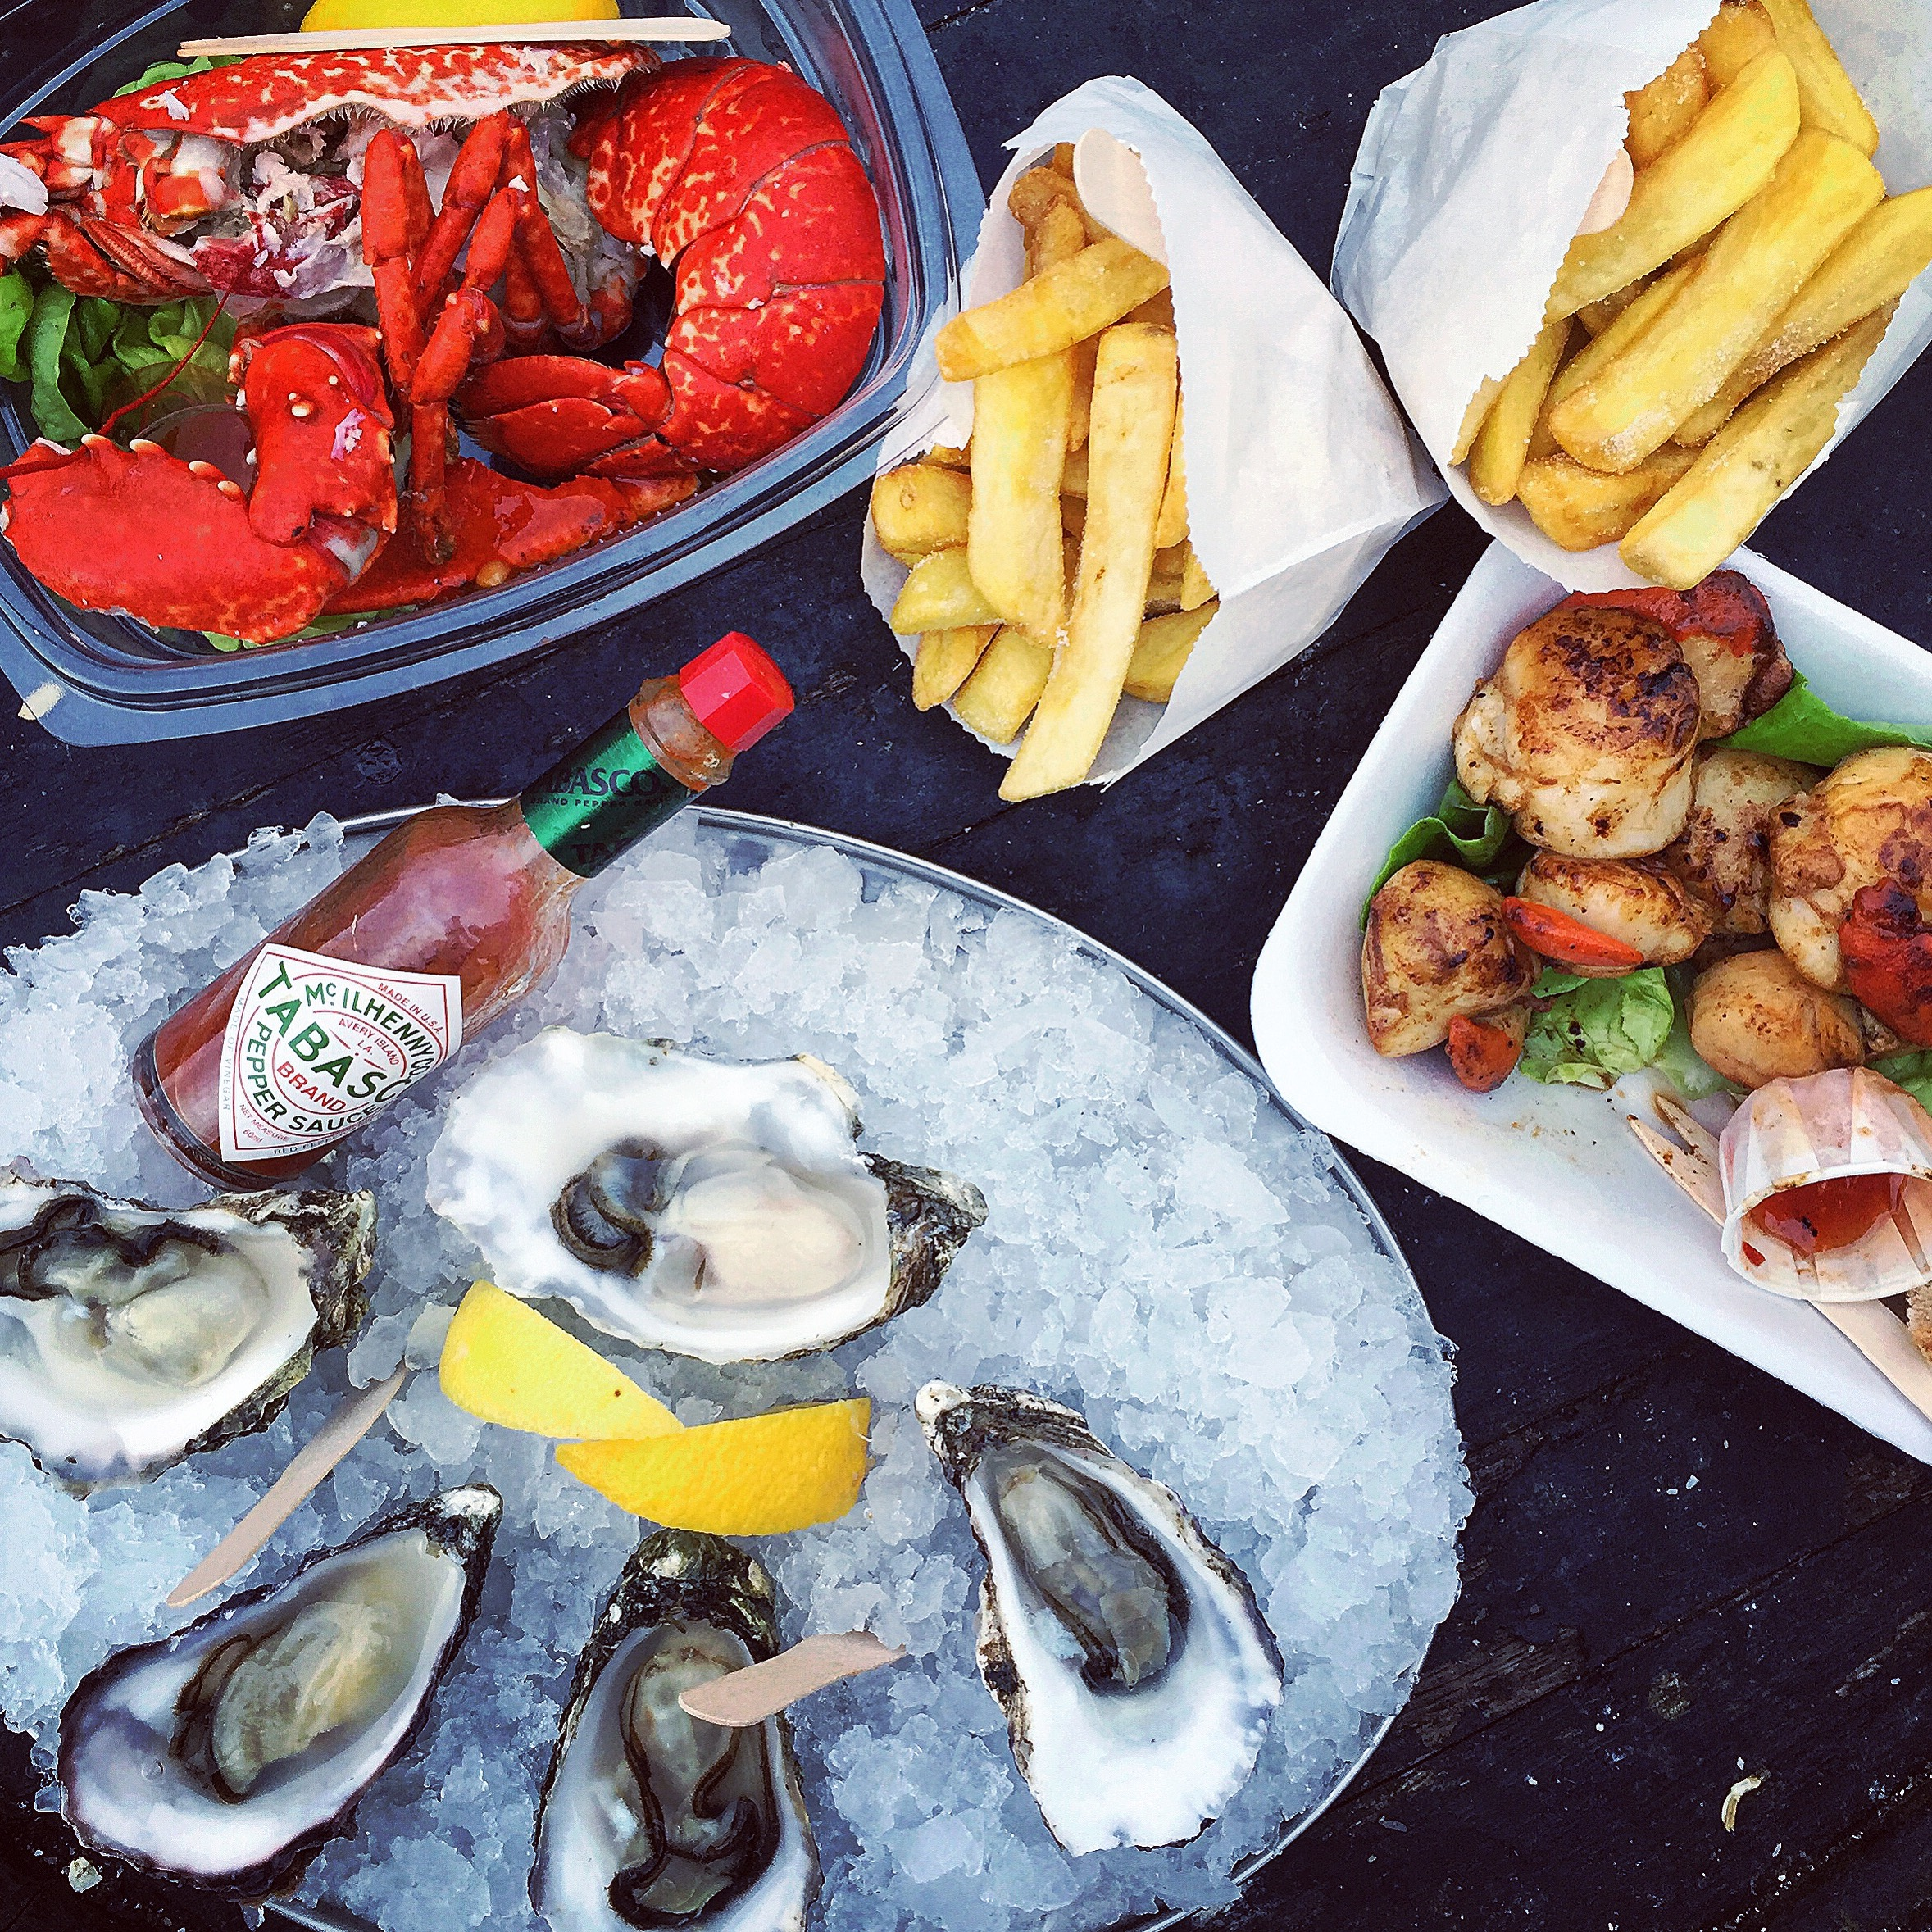 scotland-talisker-oyster-shed-lobster.JPG